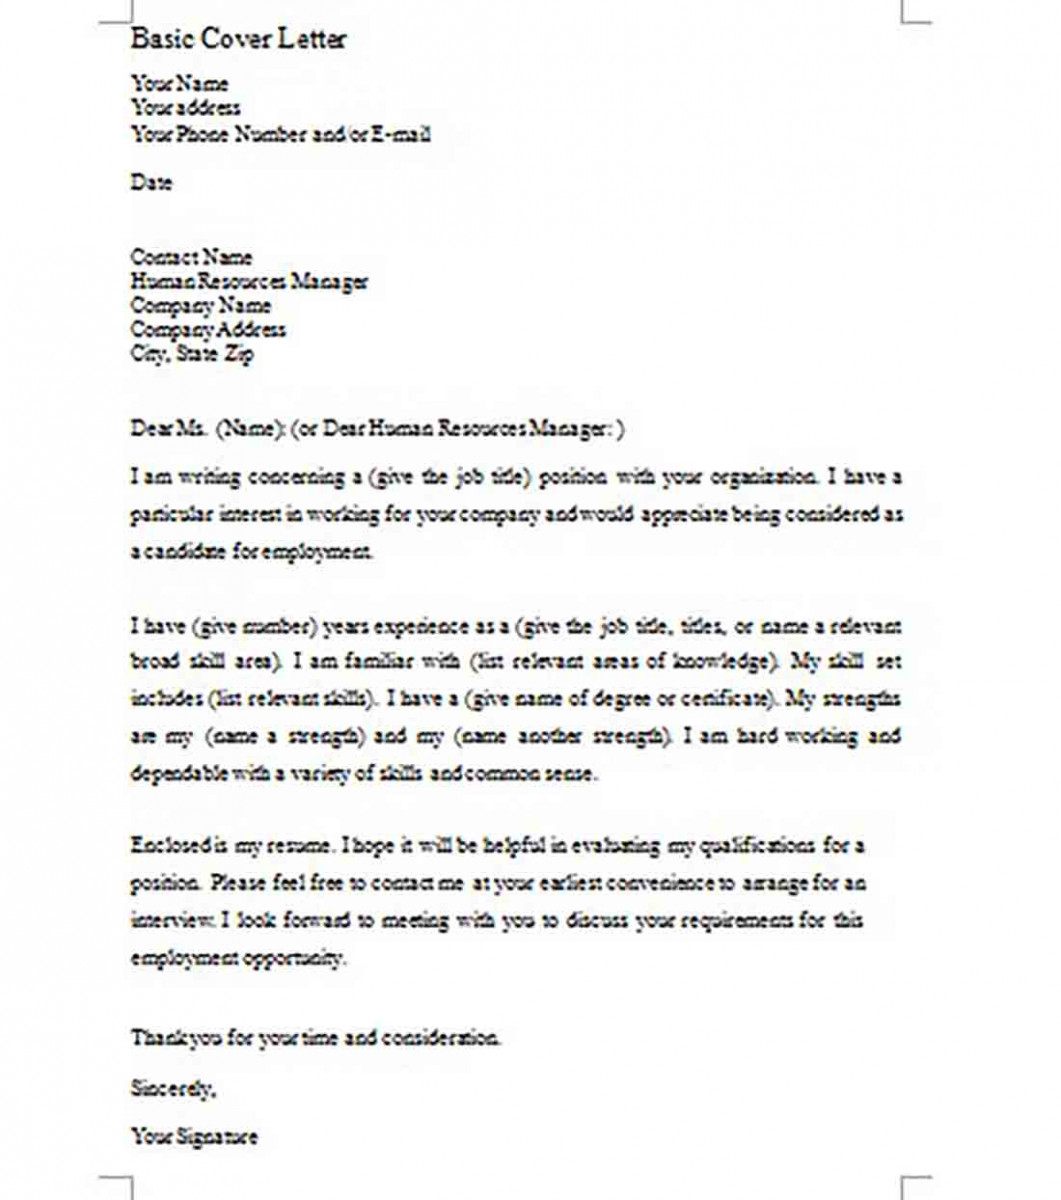 Simple Basic Cover Letter Format templates